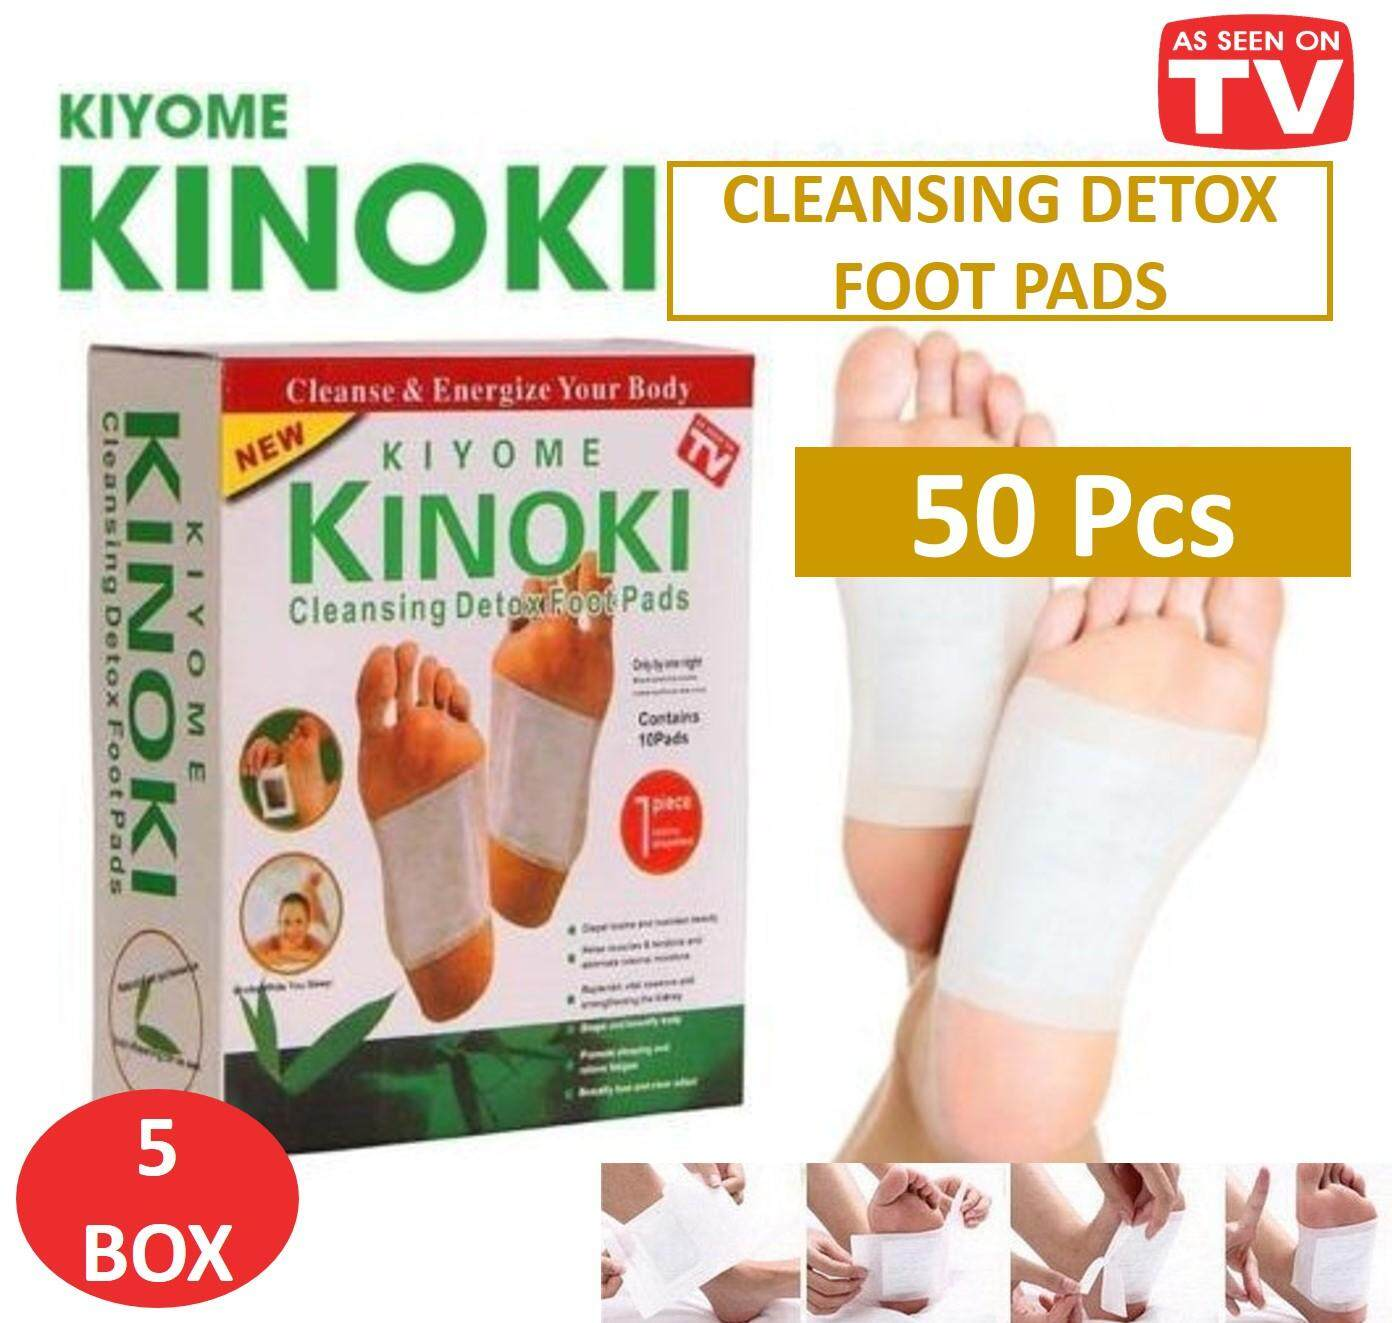 Labelle [5 Box/ 50pcs] Kinoki Detox Foot Patches Cleanse And Energize Body By La Belle..